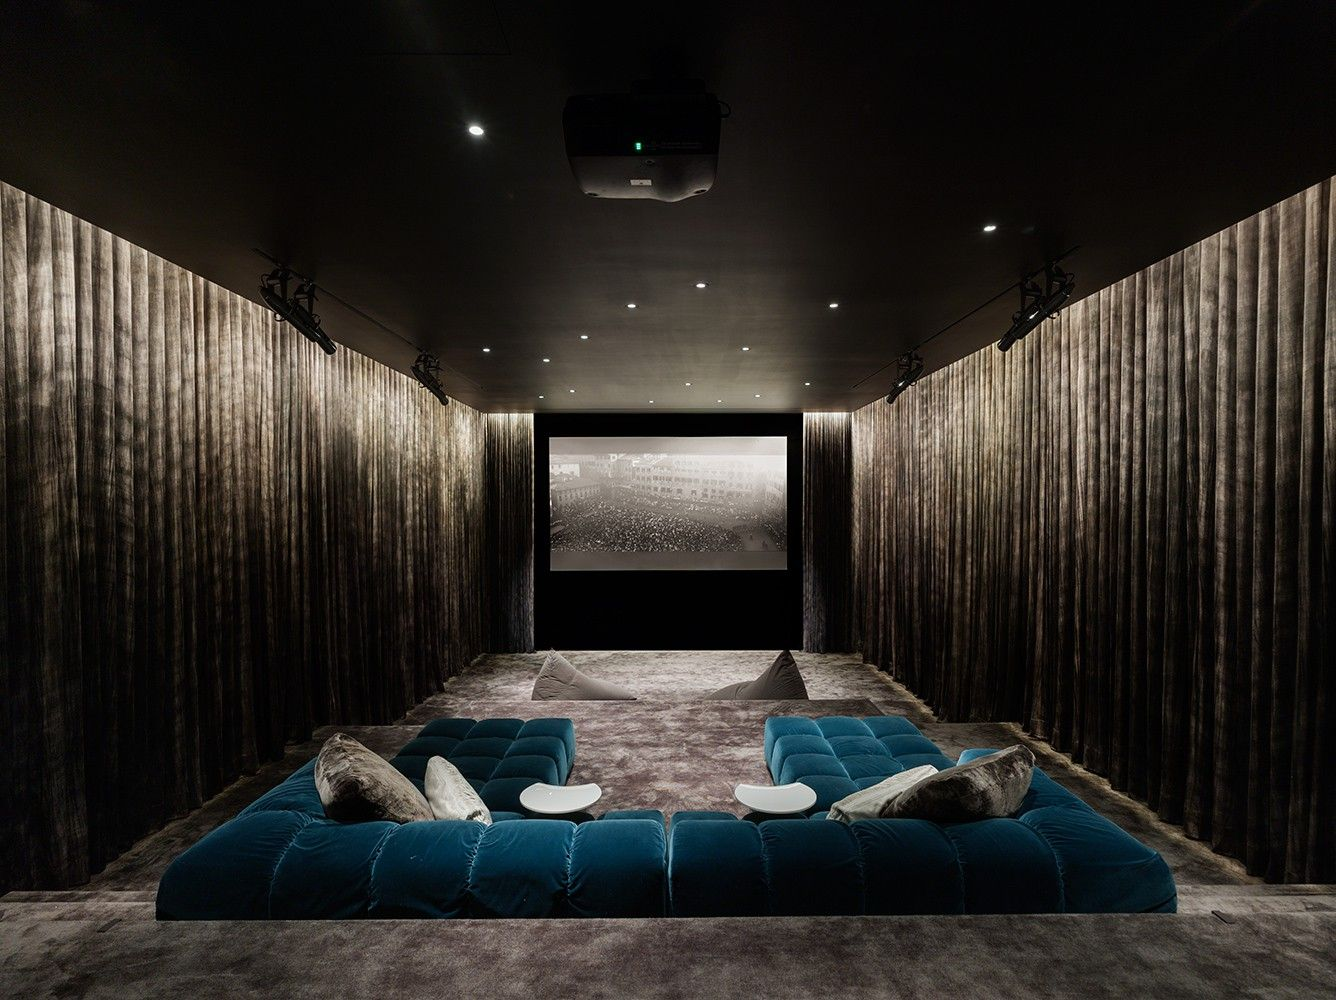 interior movie simple designs th for decorating rooms budget themed elegant decor photos diy home best theatre youtube unique small design family ideas room theater